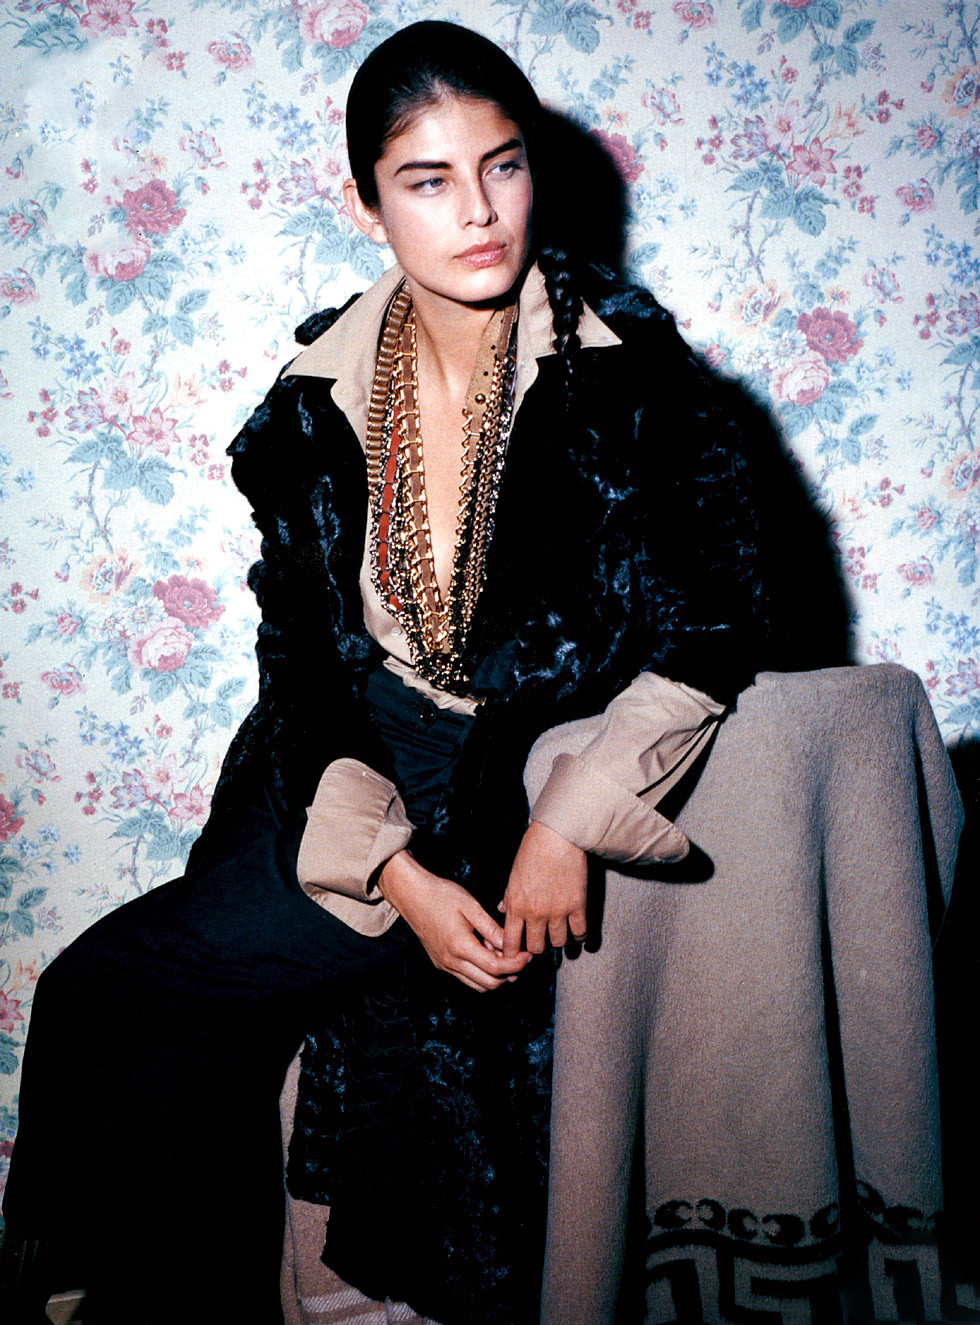 Liliana Dominguez wearing Lanvin by Alber Elbaz mink coat in After hours / Elle US September 2005 (photography: Manuela Pavesi) via www.fashionedbylove.co.uk